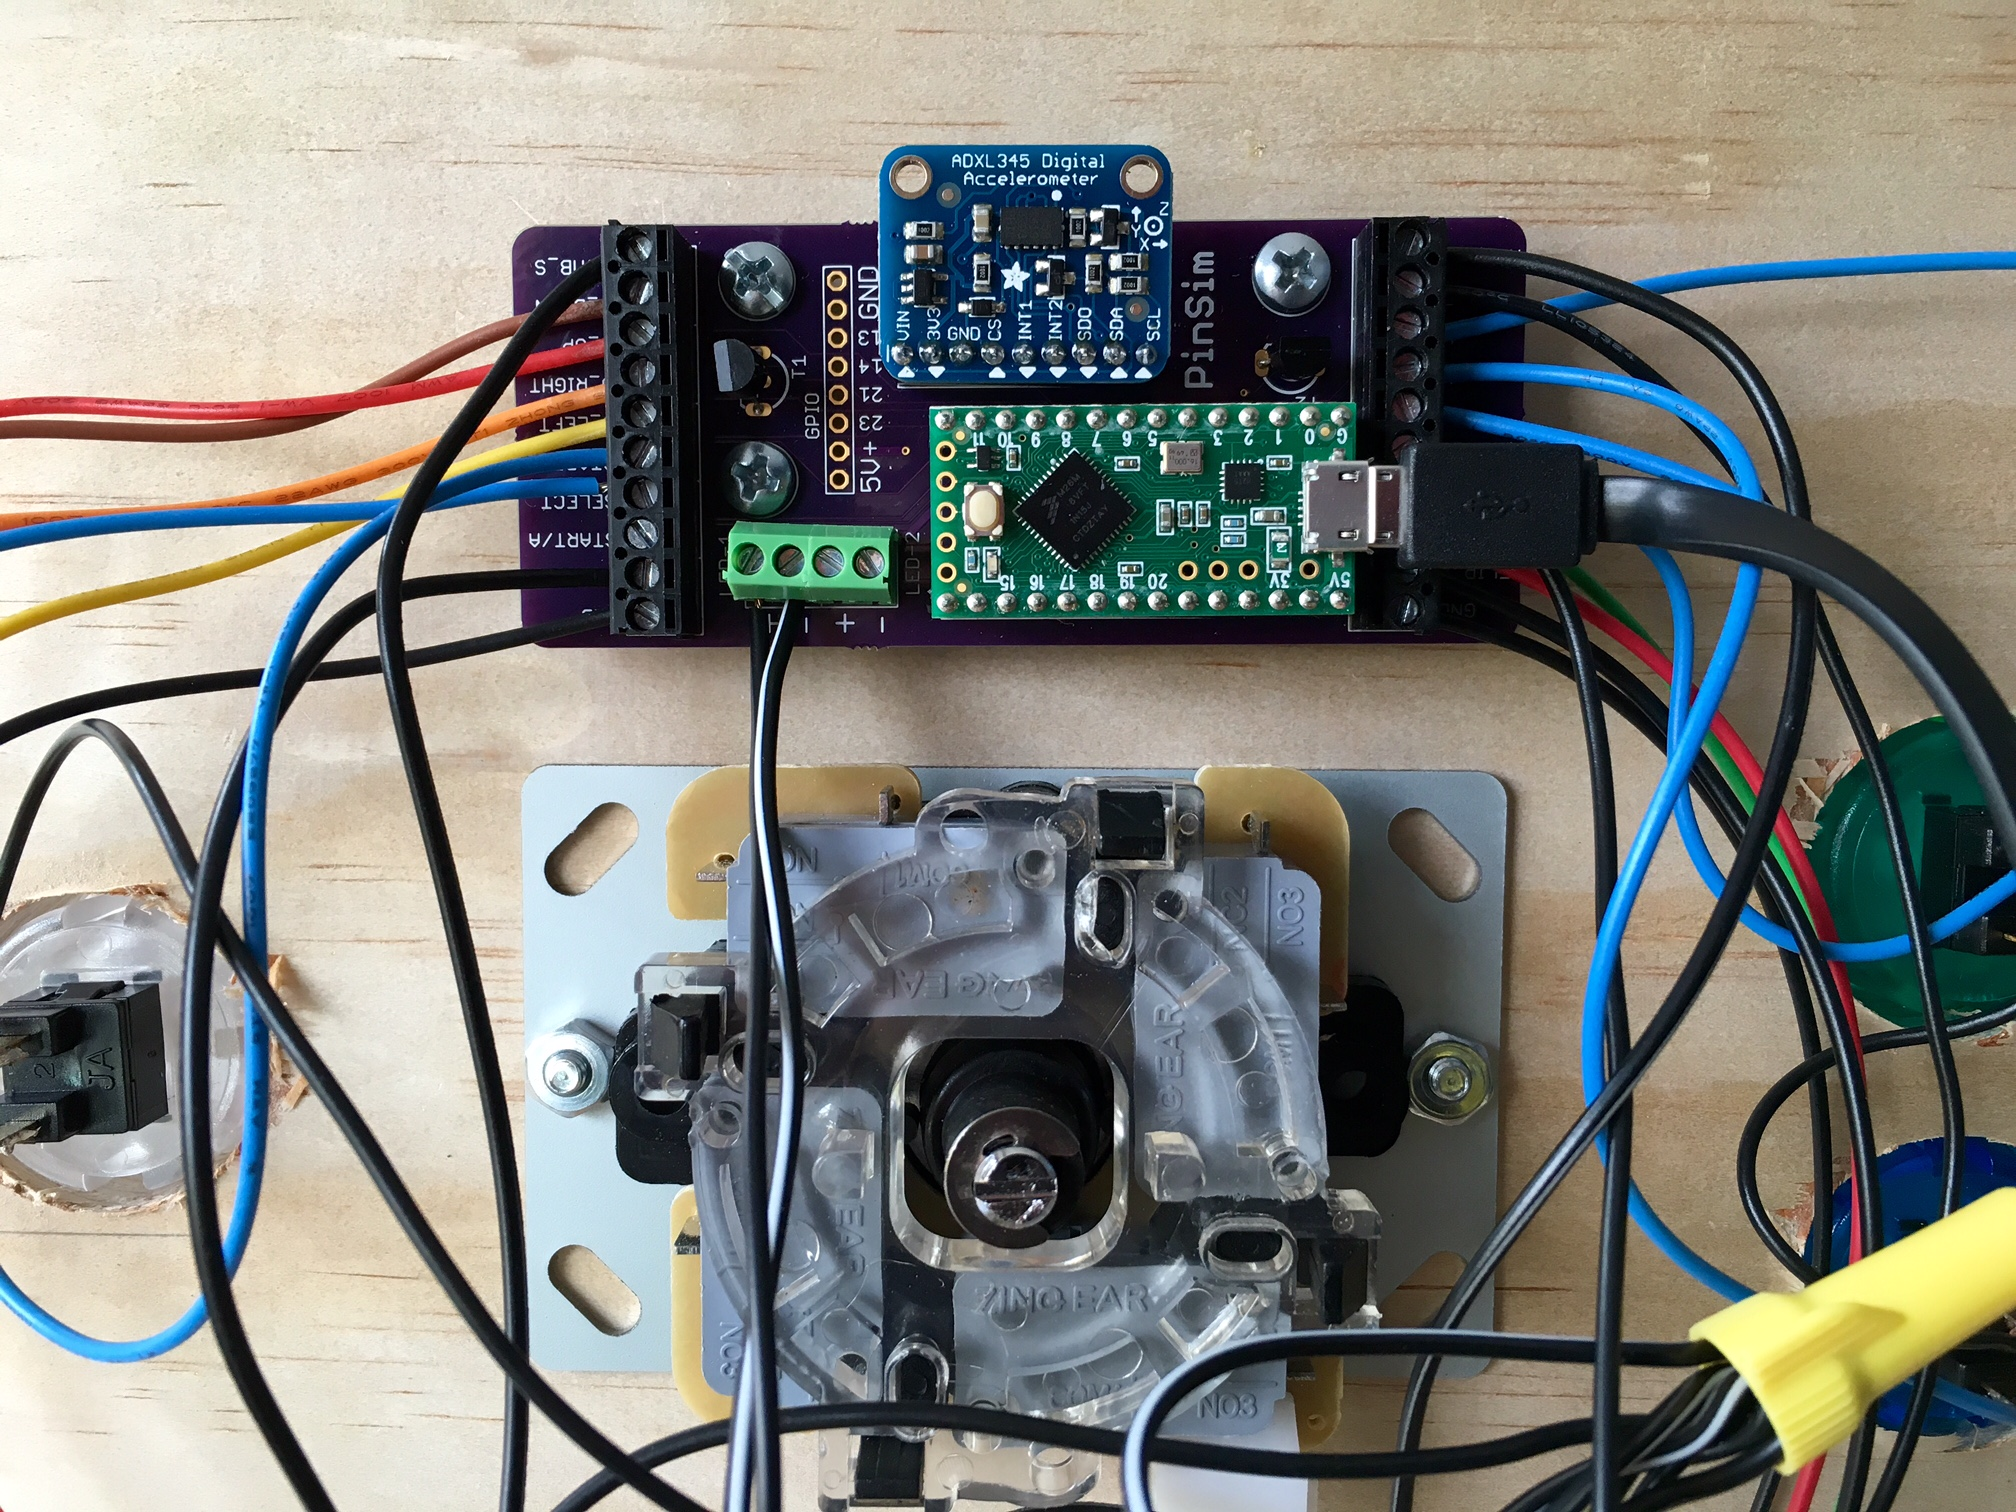 how to build the pinsim virtual reality pinball machine tested wire everything up according to this image if you re using a breadboard or just use the labeled terminals if you re using my pcb note that all components